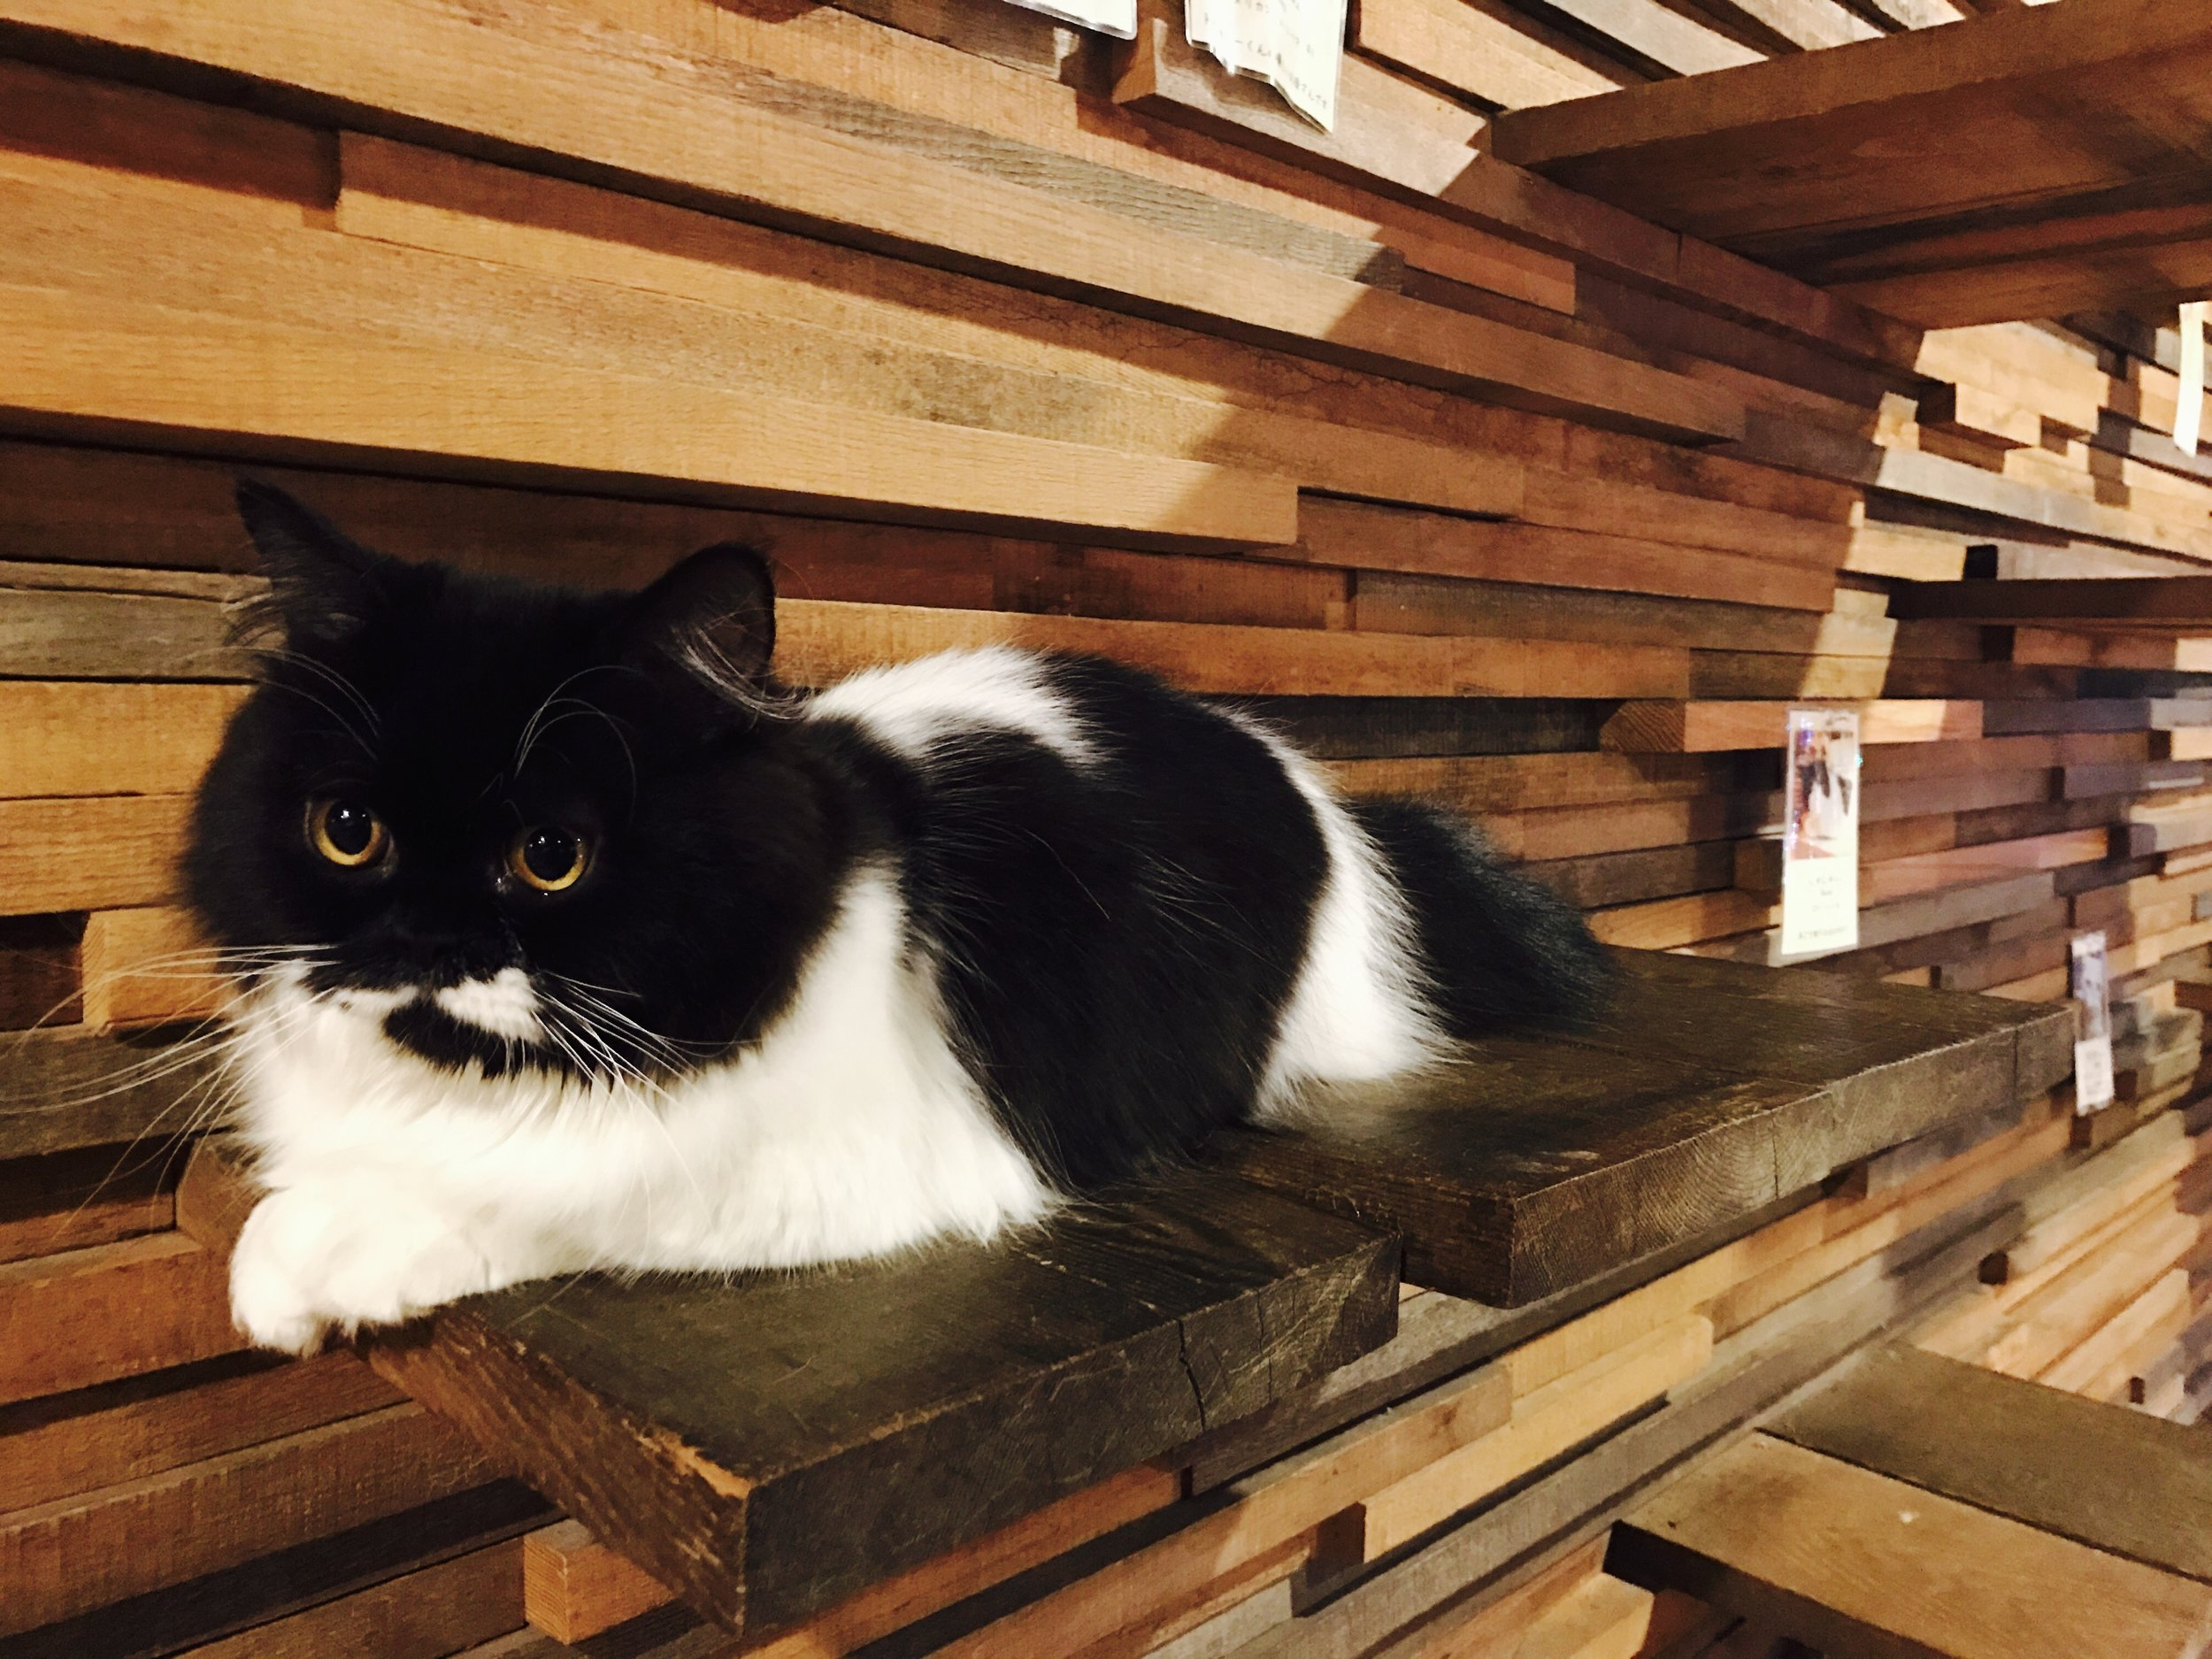 Click here for a complete review of Neko no Jikan Amemura (Cat of Liberty) in Osaka, Japan